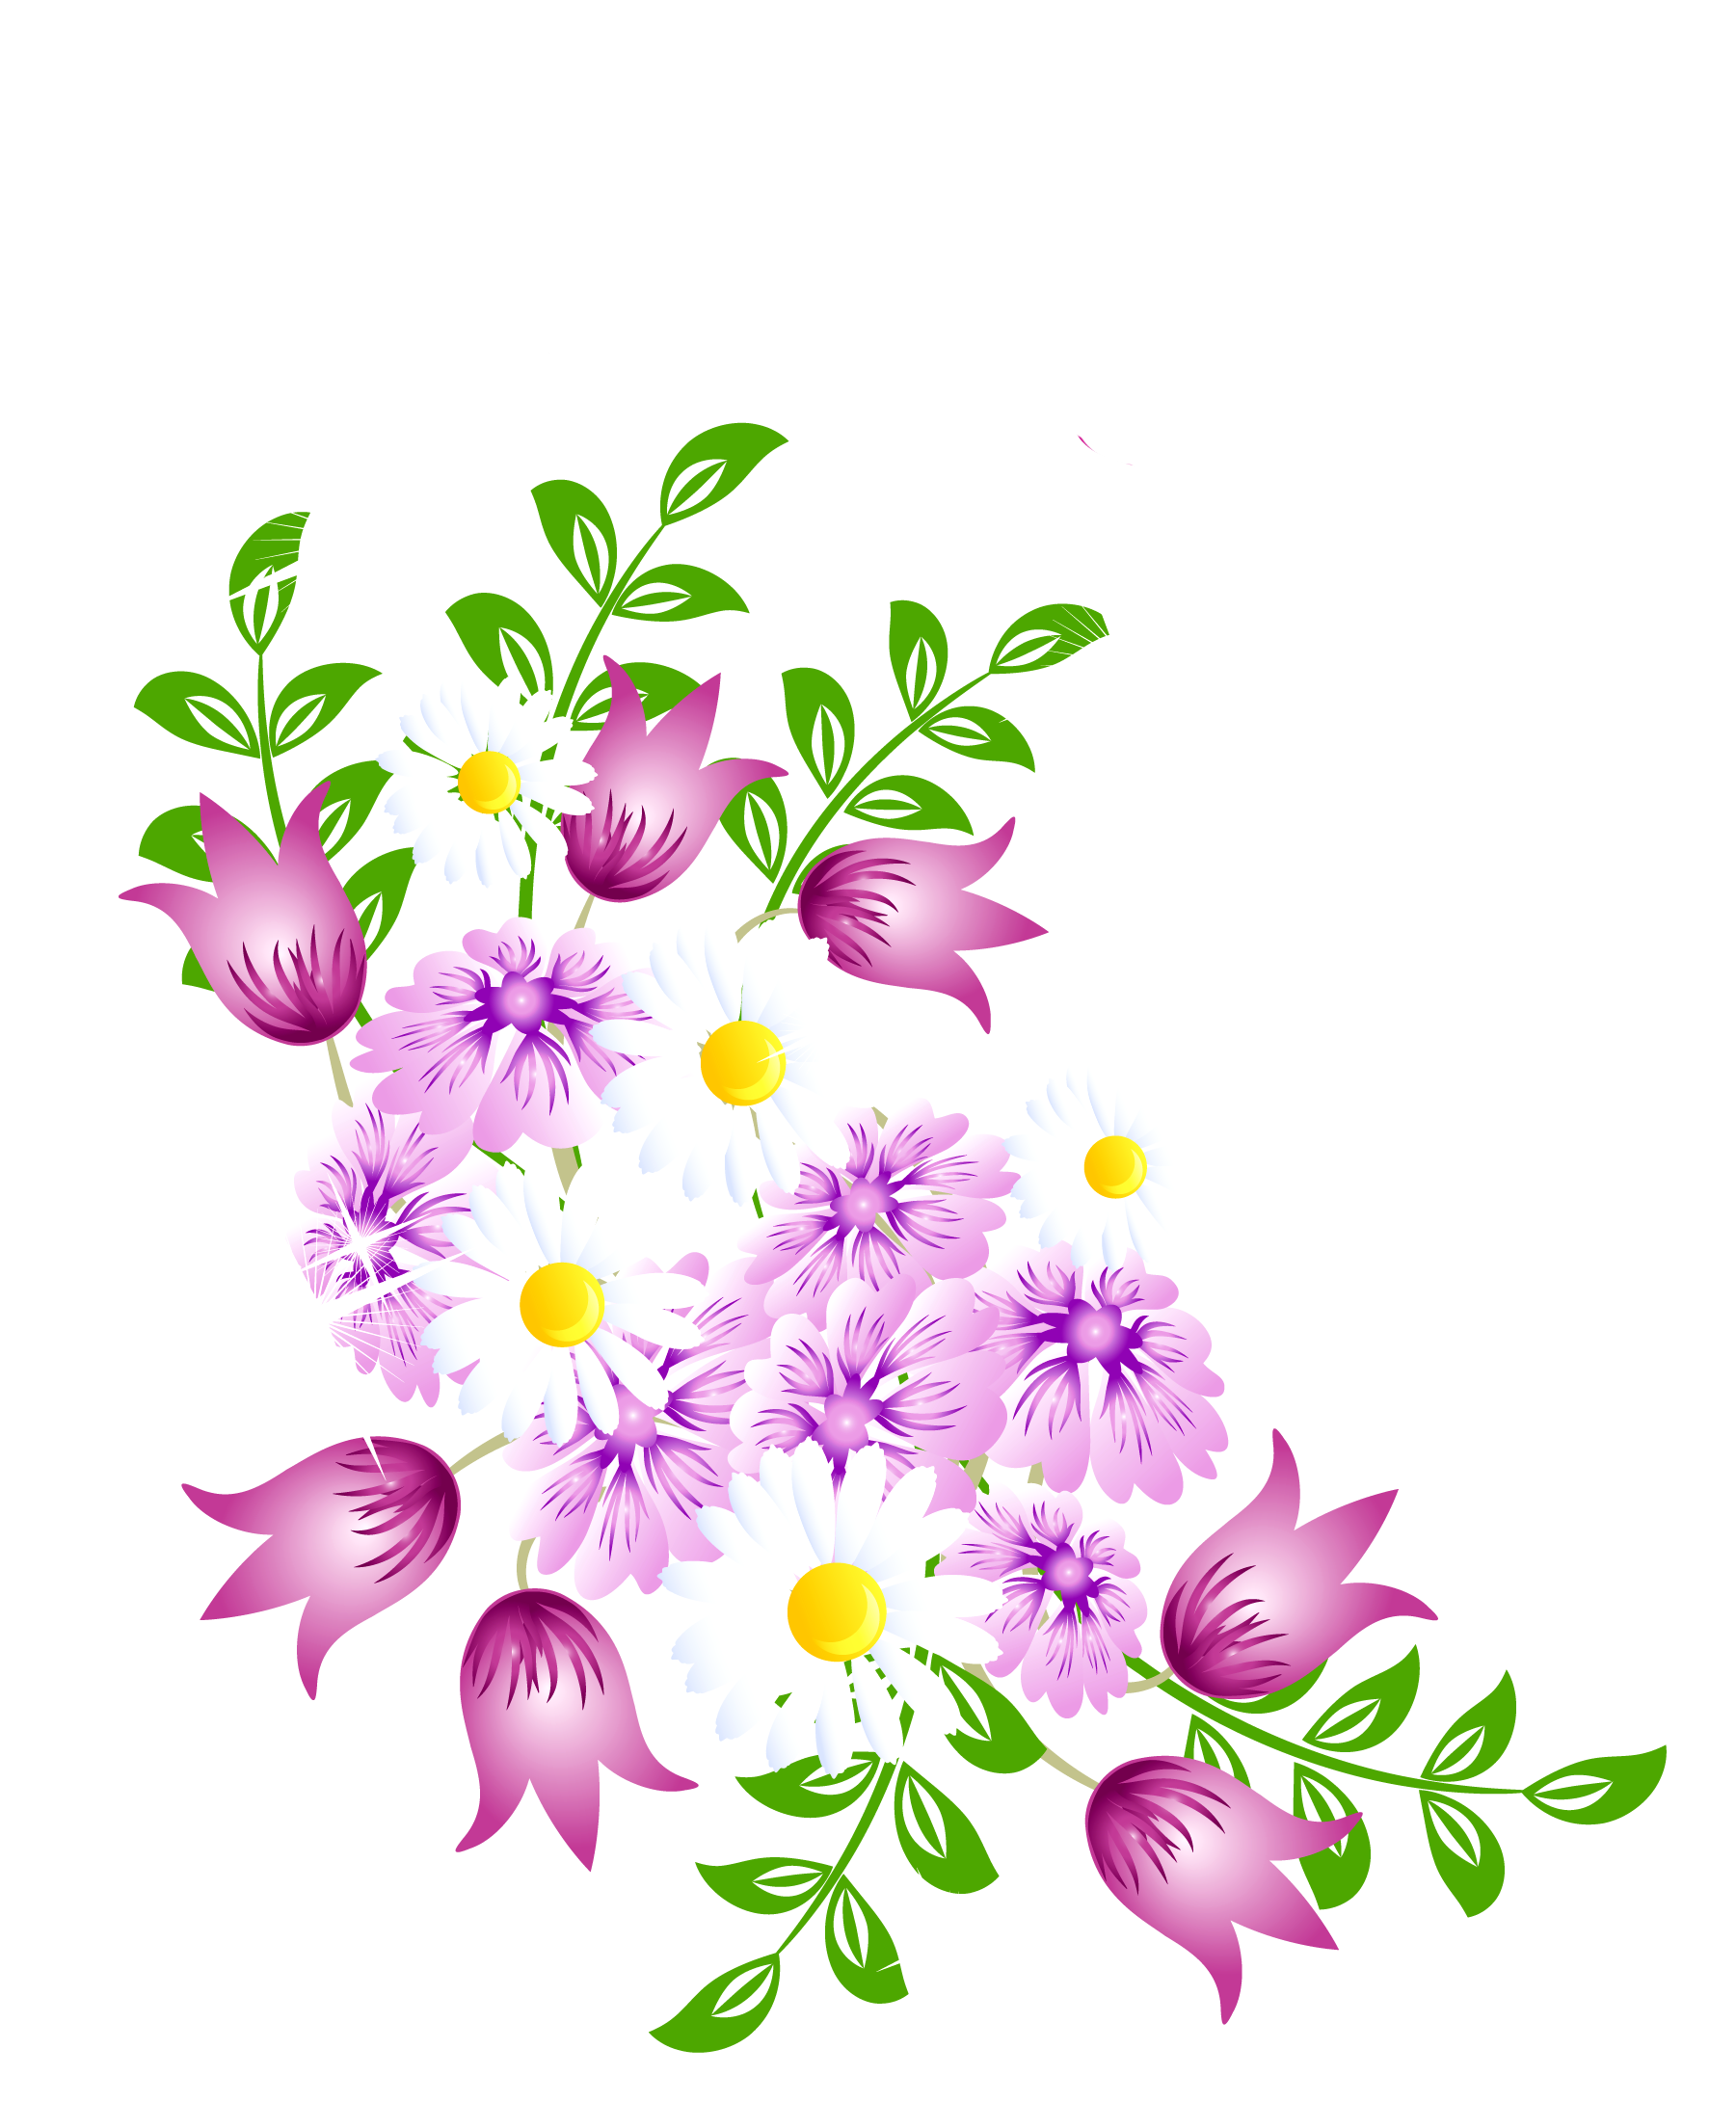 Watercolor Flowers Png Vector Psd And Clipart With: Free Watercolor Flower Clipart At GetDrawings